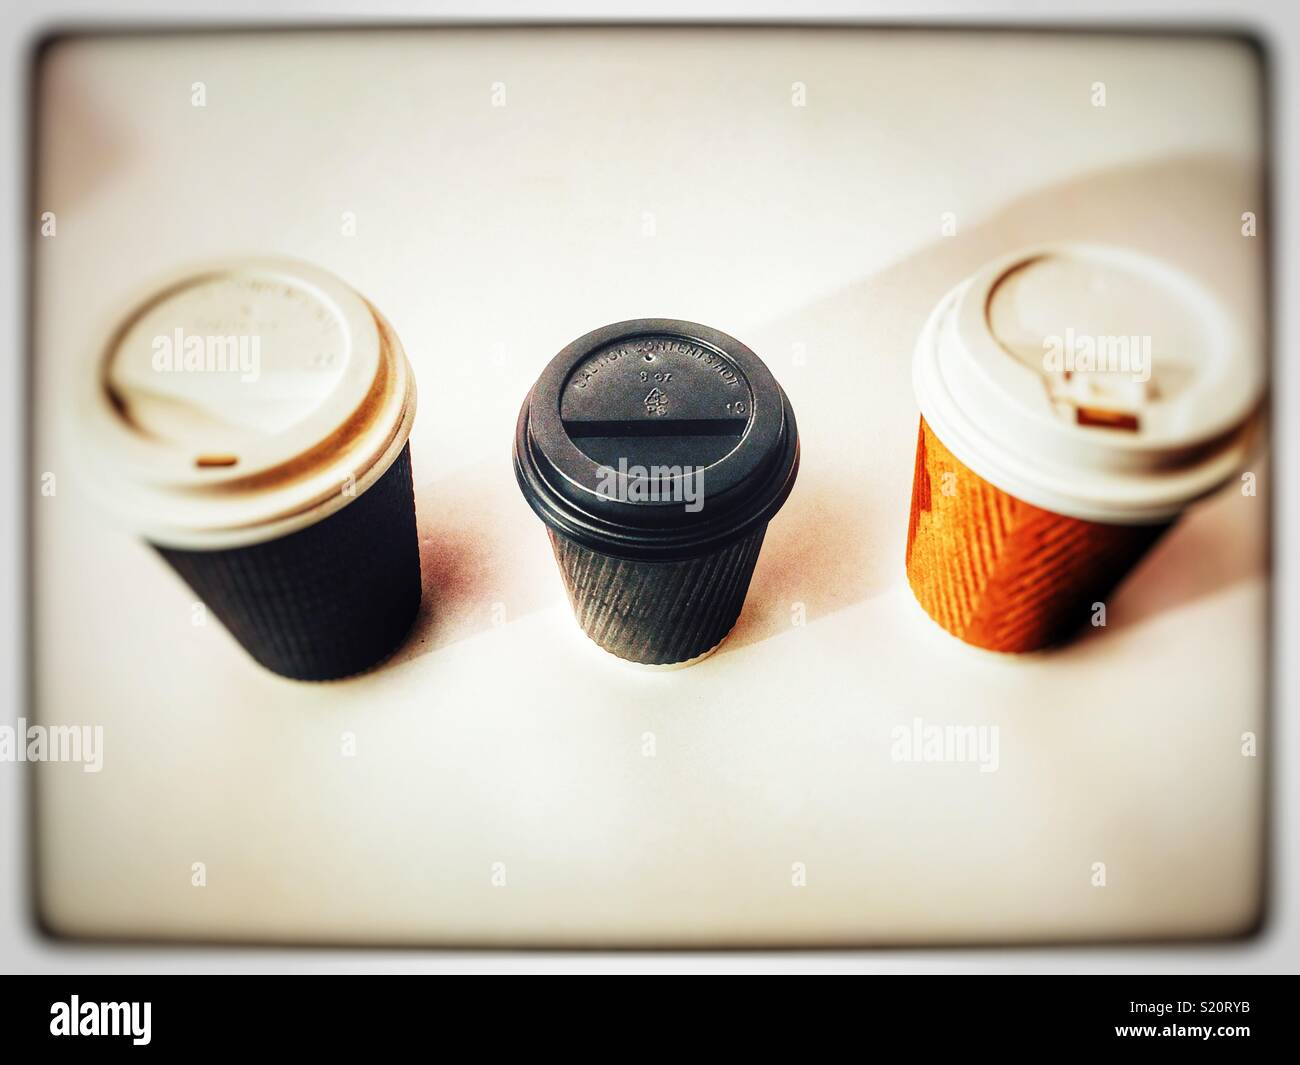 Take away non-recyclable coffee cups - Stock Image